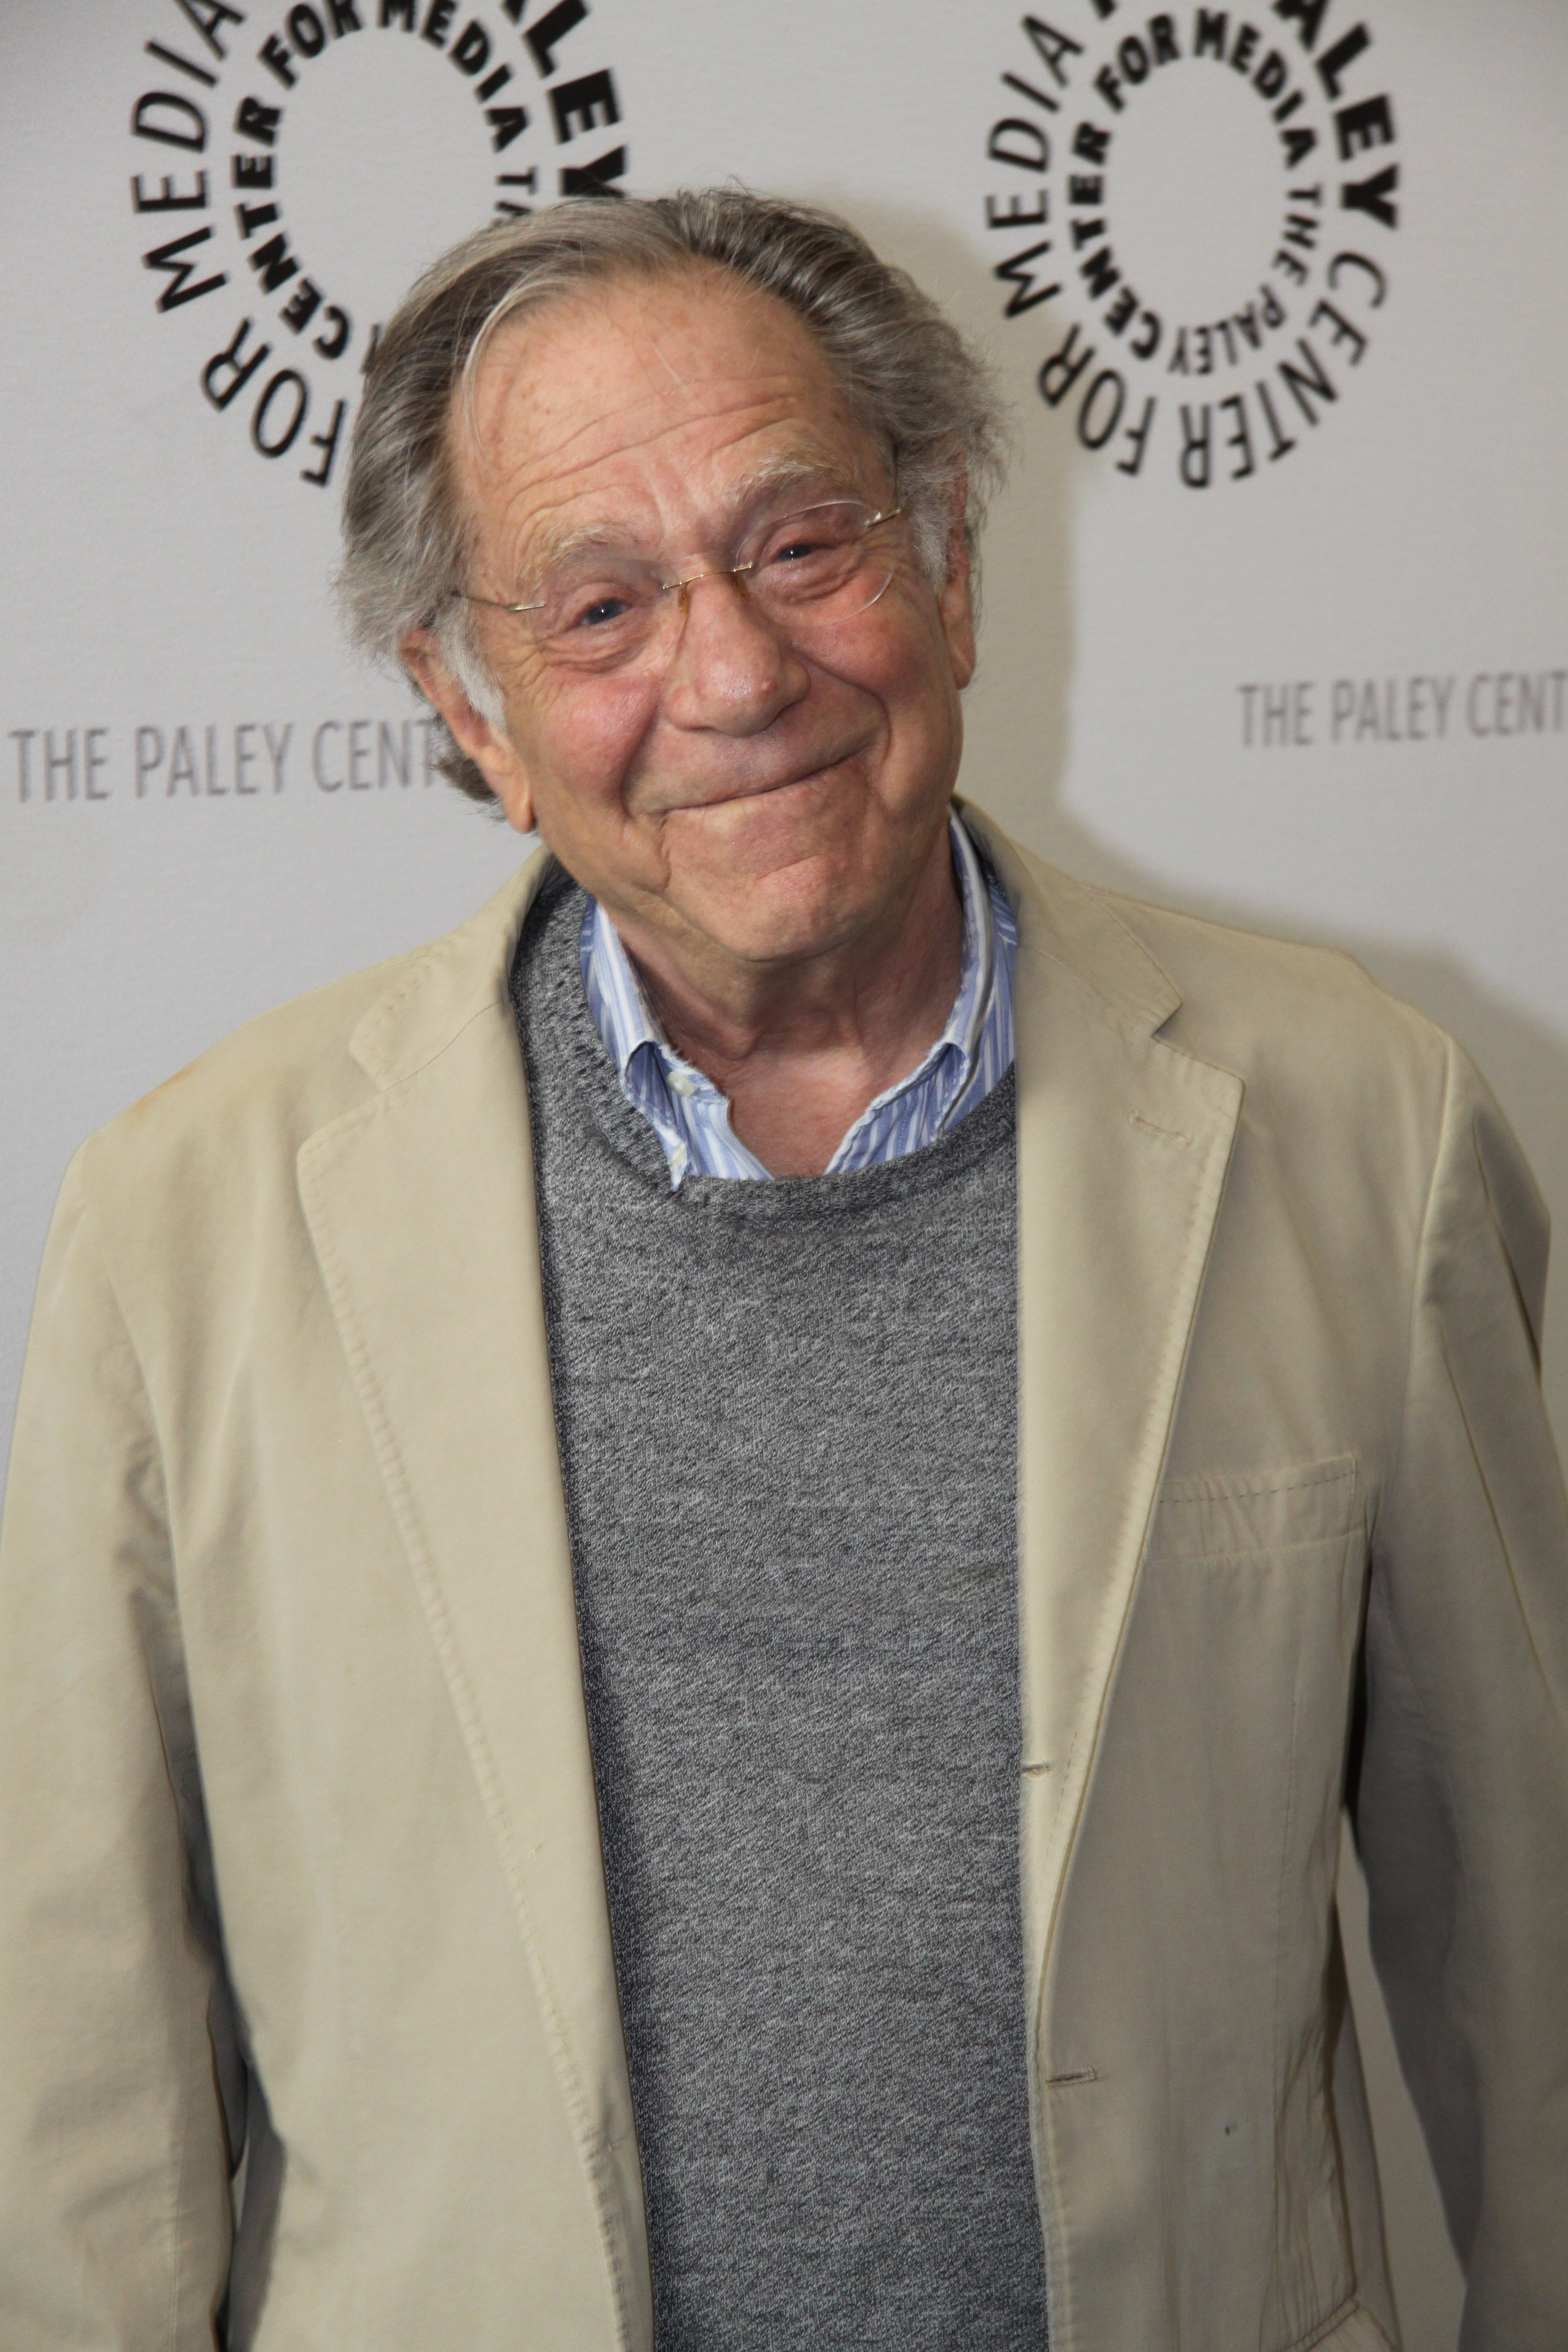 George Segal at The Goldbergs: Your TV Trip to the 1980s event on April 28, 2014 in Beverly Hills, CA | Photo: Shutterstock